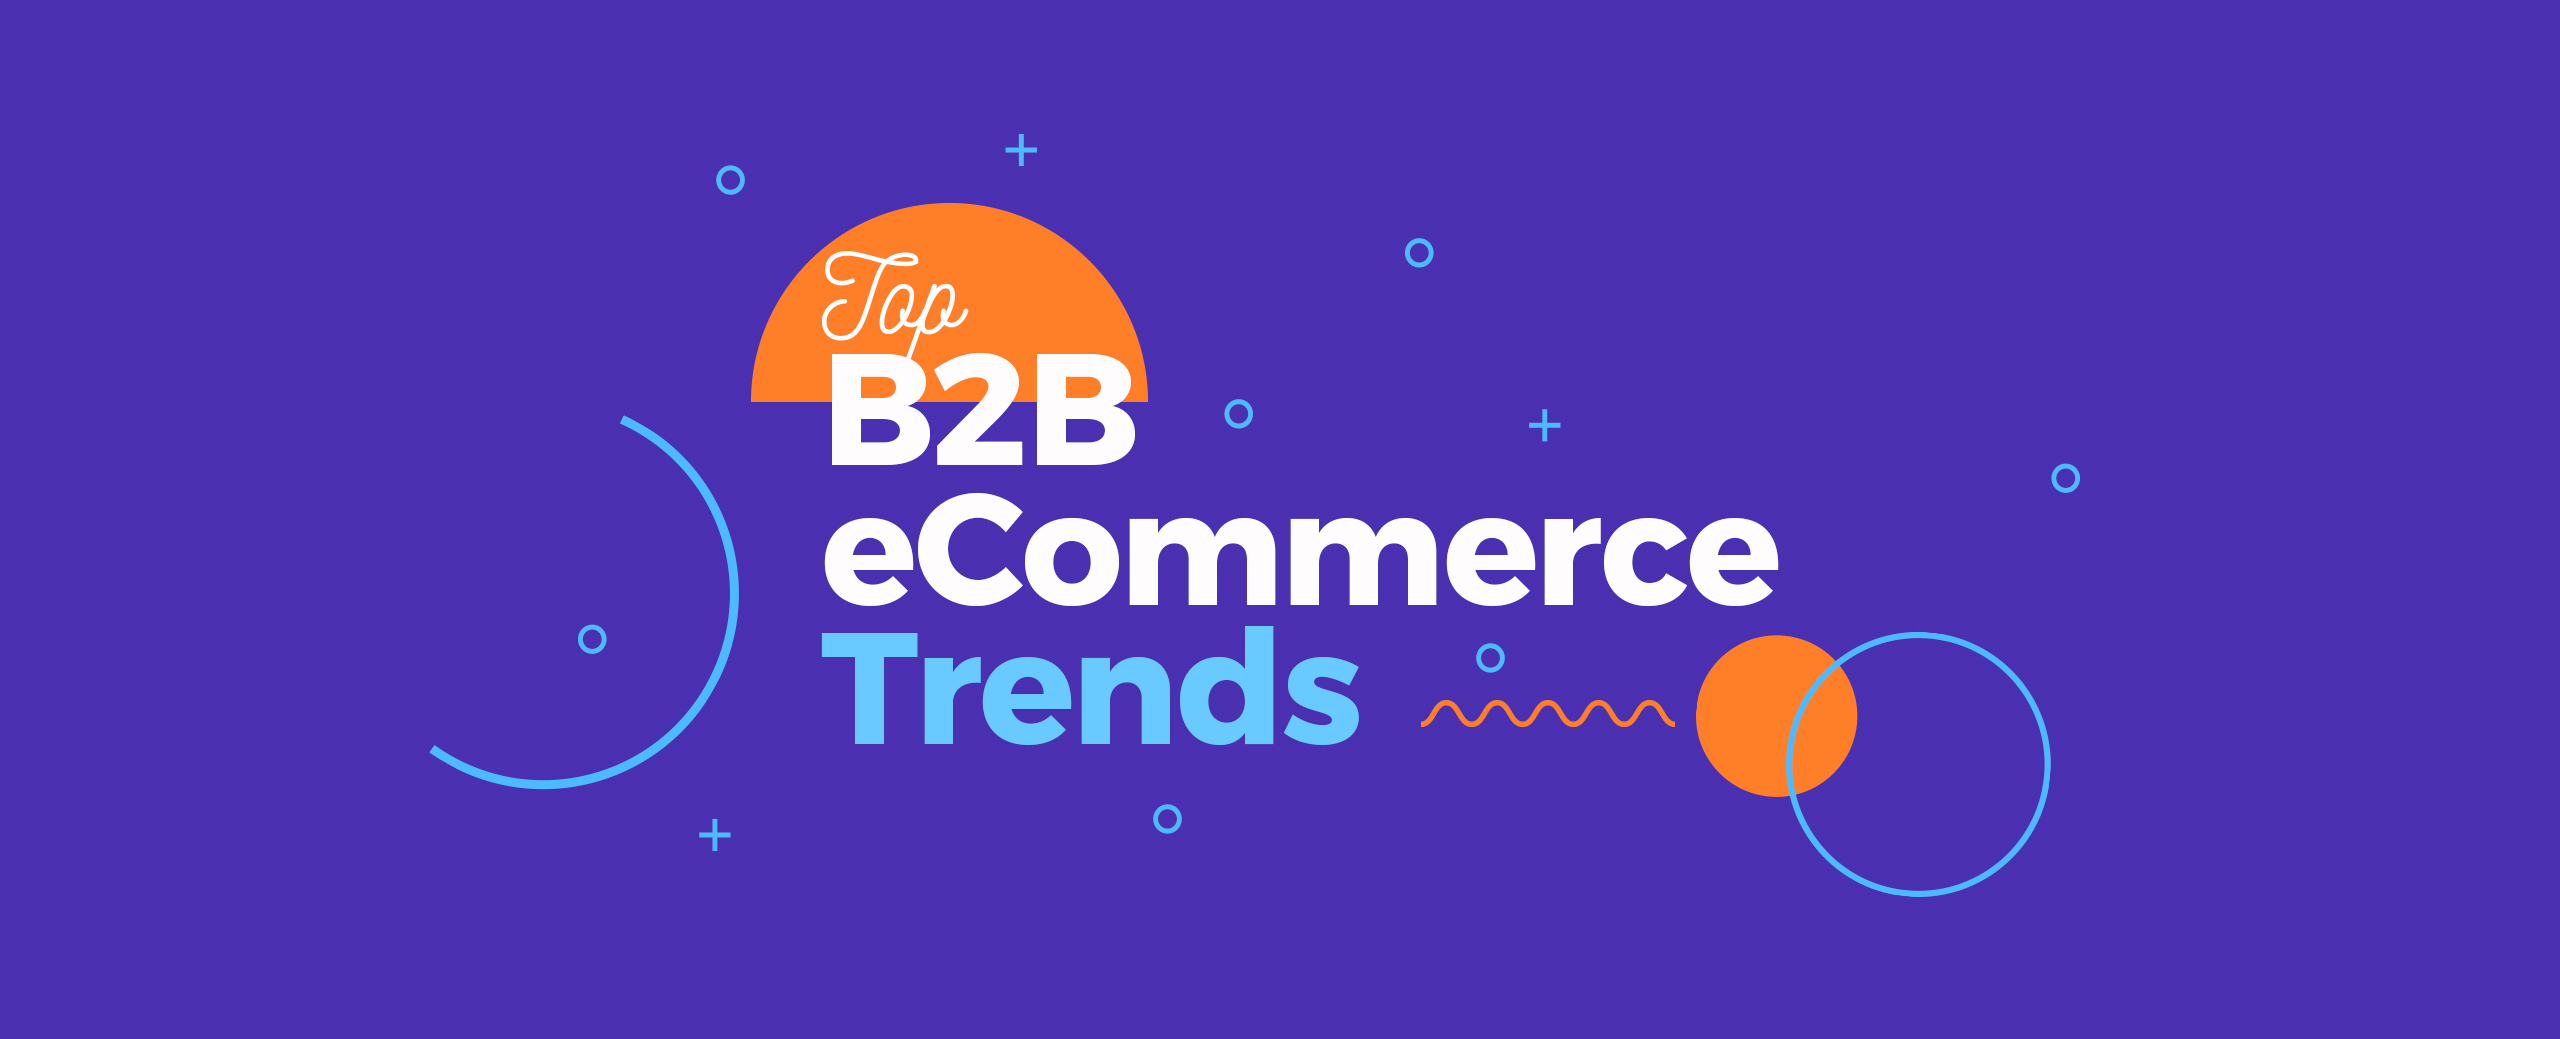 Top-B2B-eCommerce-Trends-You-Need-To-Know